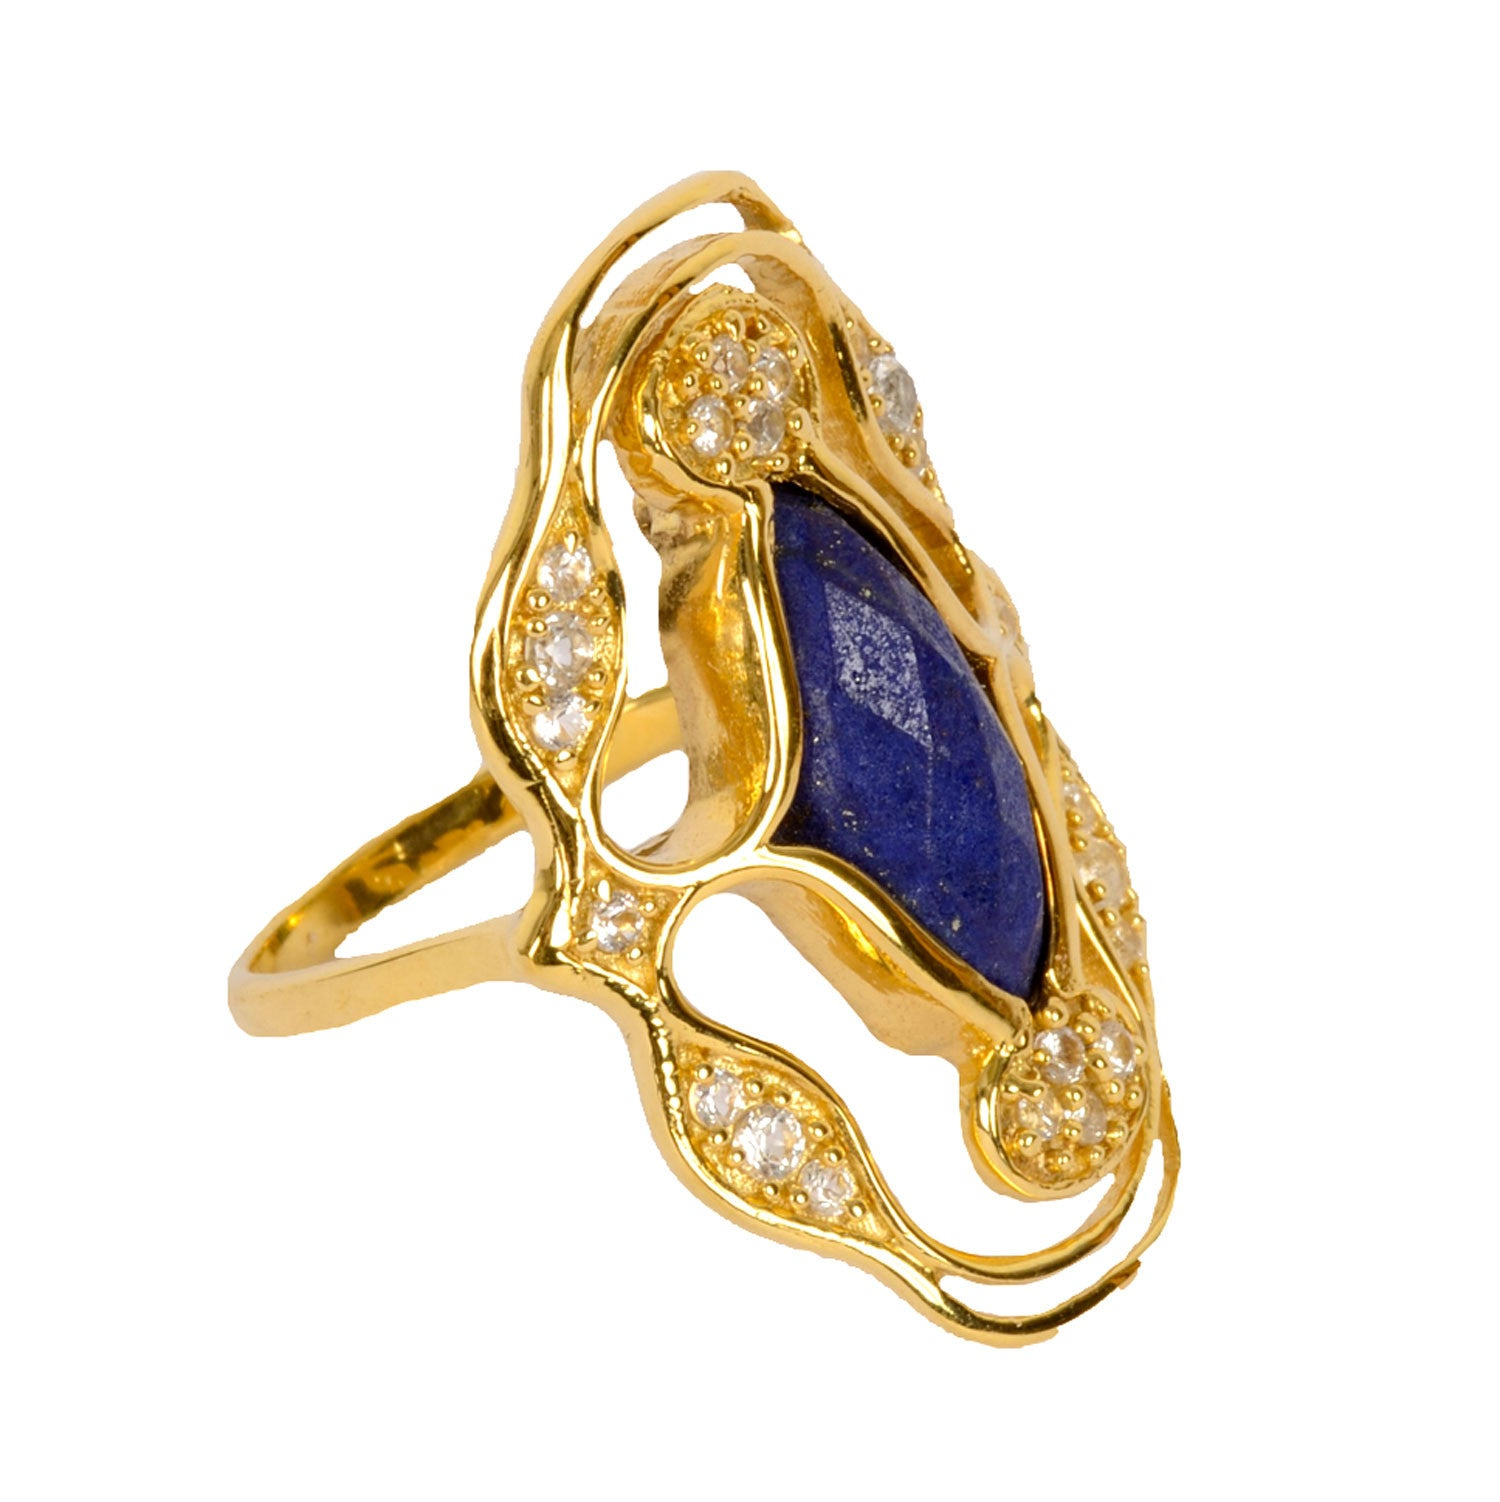 Cocktail Ring with Lapis Lazuli